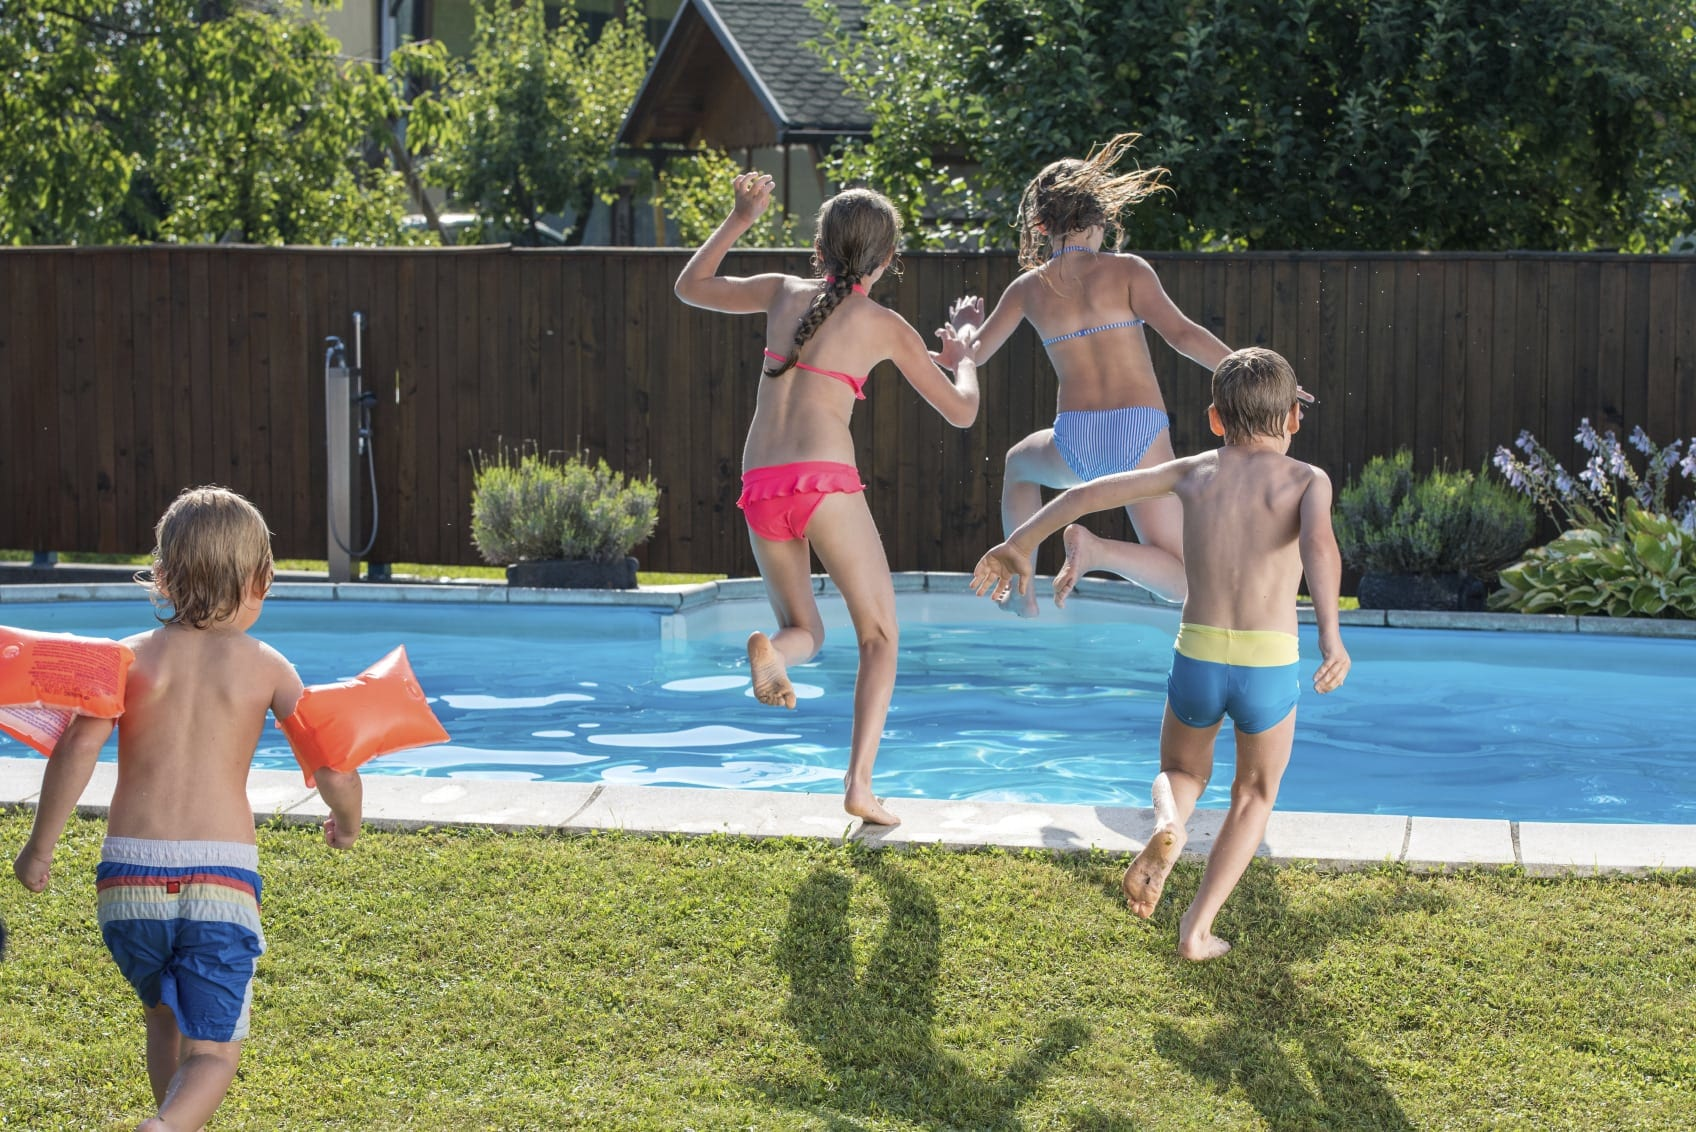 Children Jumping Into Swimming Pool Stock Photo